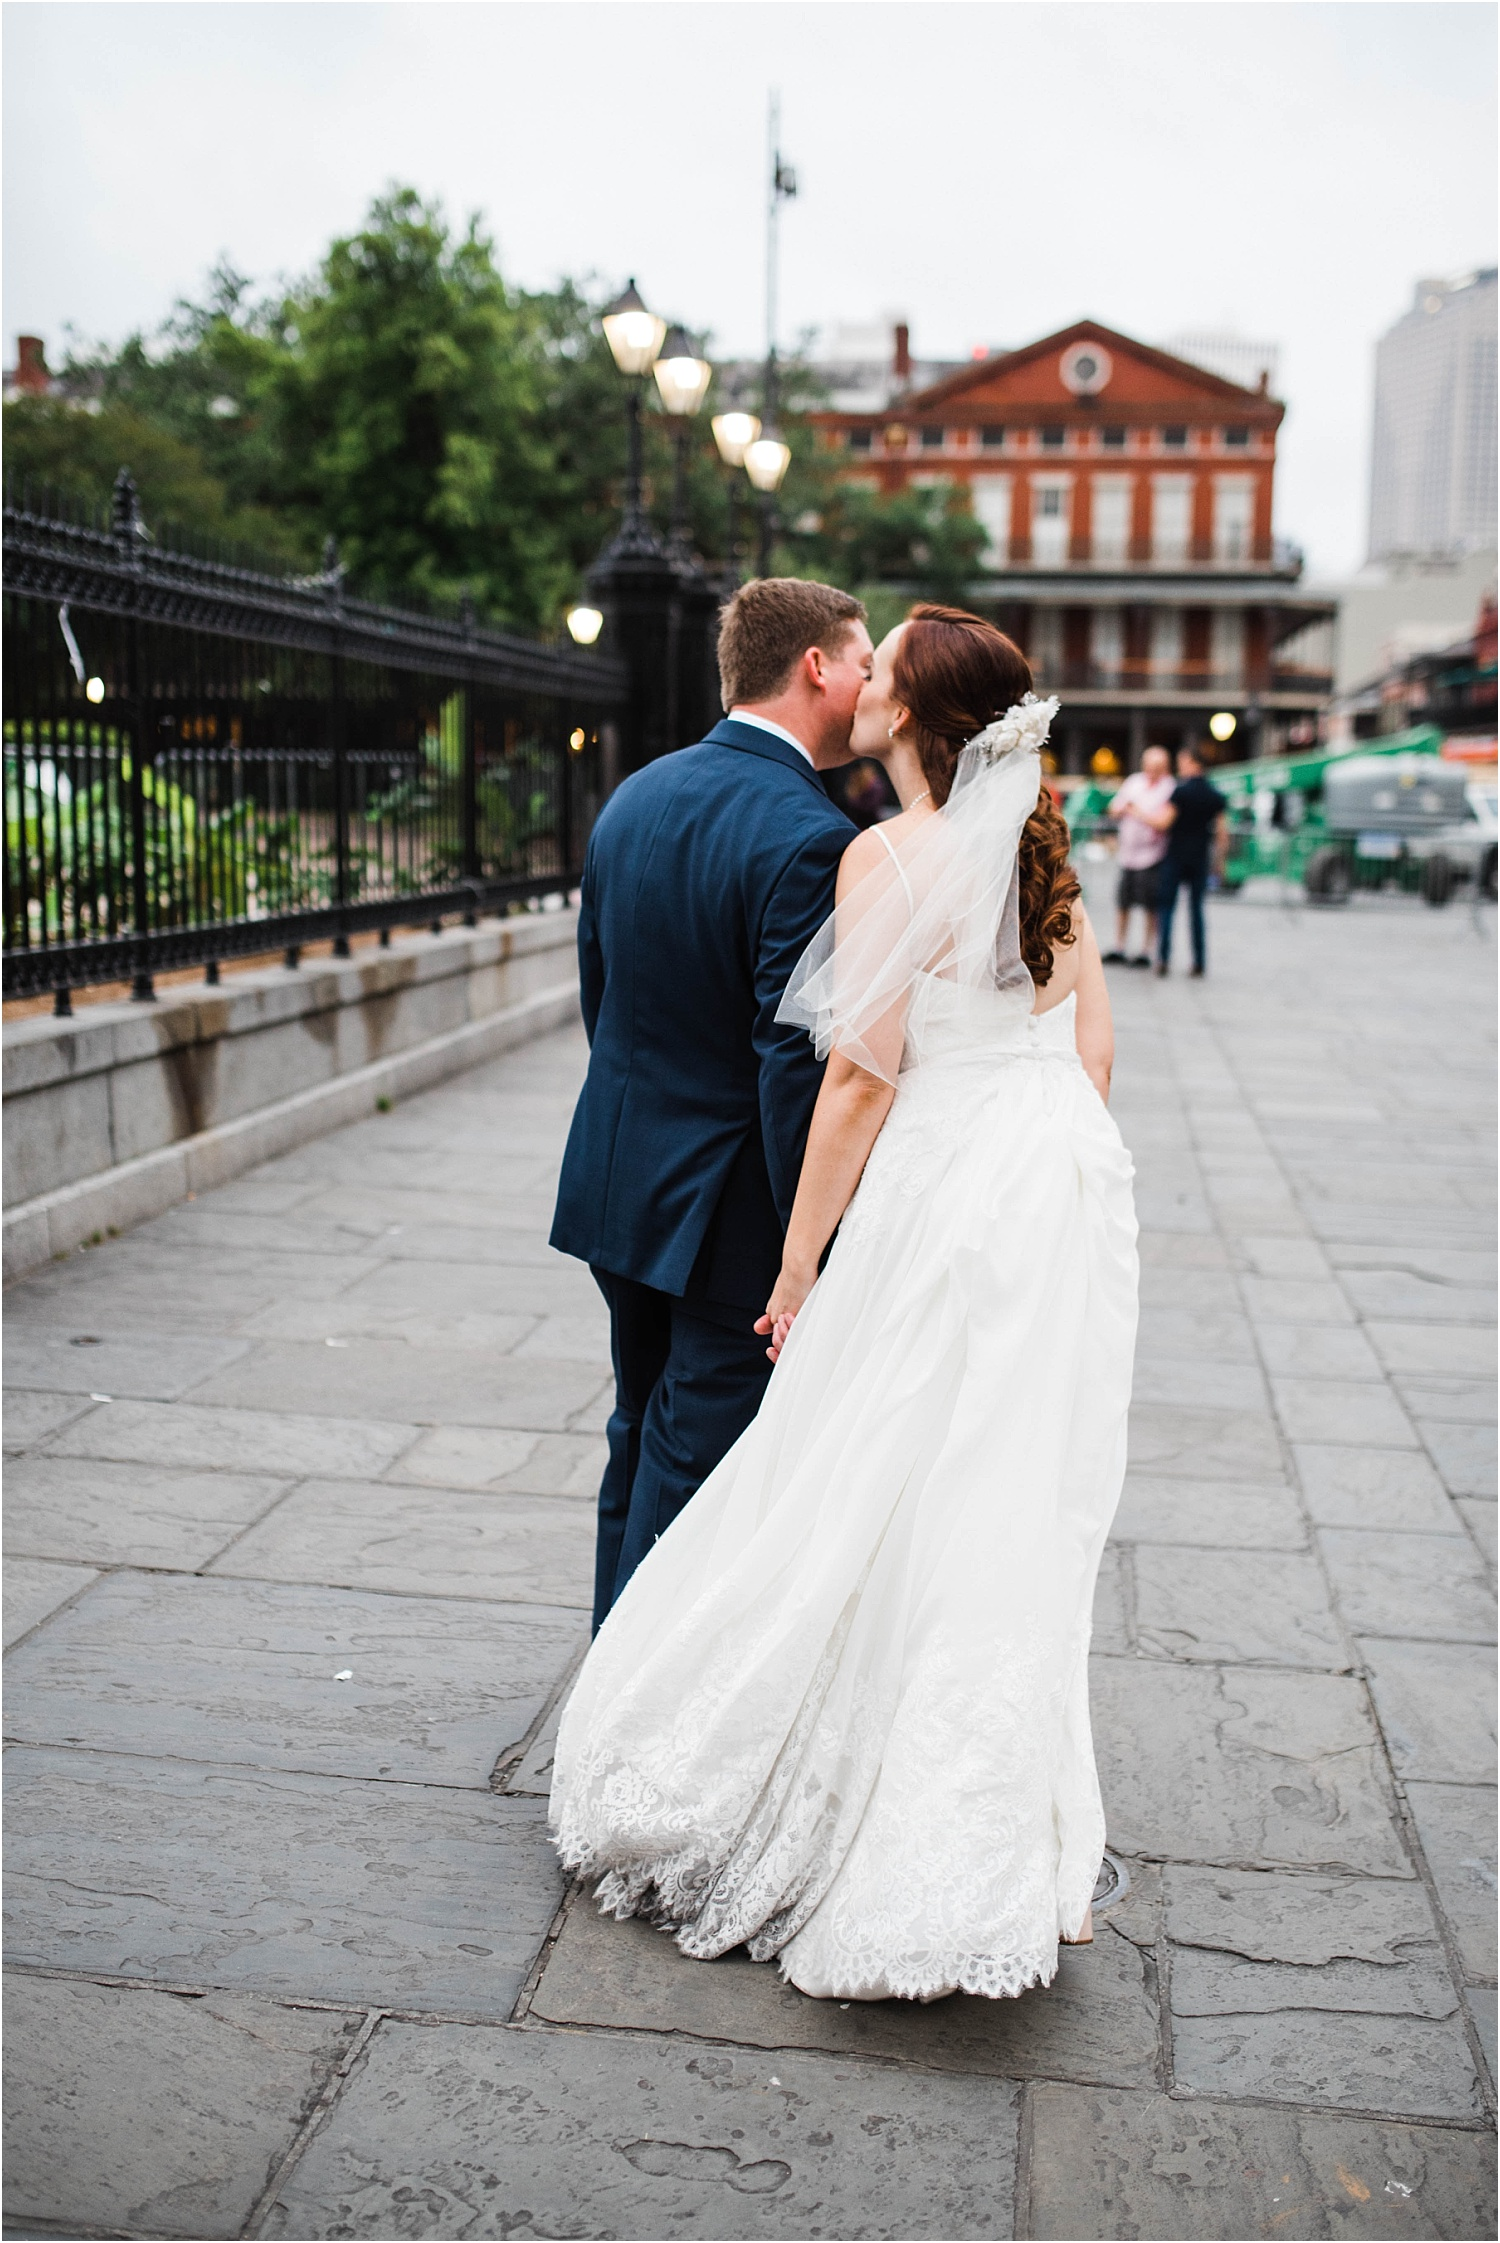 Amy + Chris-Pharmacy-Museum-Muriel's-New-Orleans-Wedding-Photos_Gabby Chapin_Prints_00435_BLOG.jpg